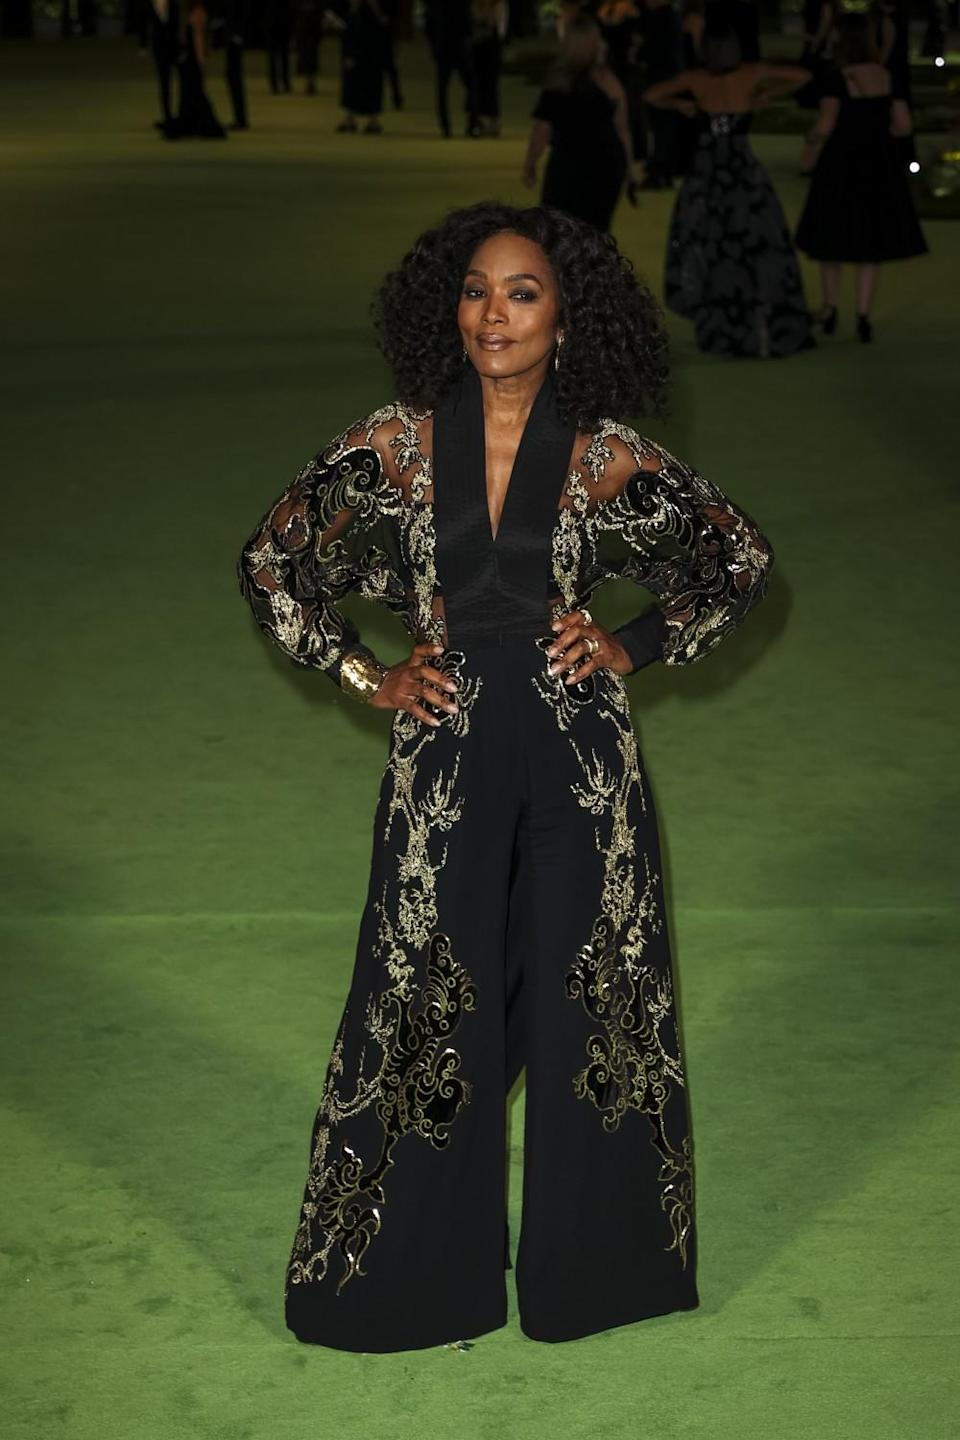 A woman in a patterned, black jumpsuit posing on a green carpet